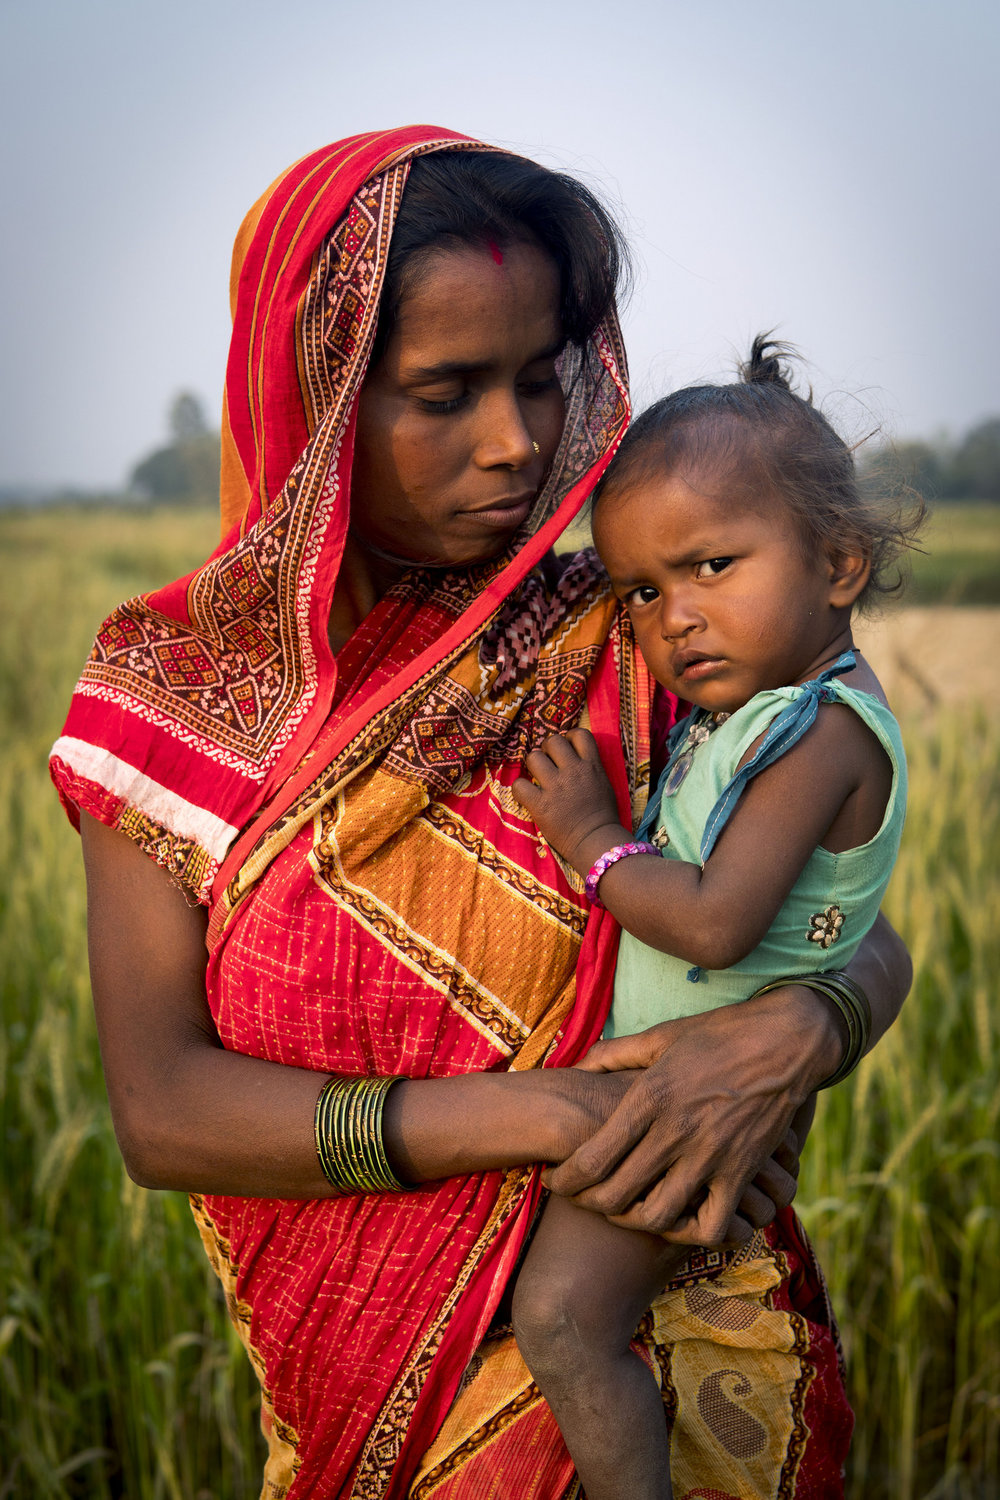 Mother and daughter in Saptari. Taken March, 2017 by Brendan Davis